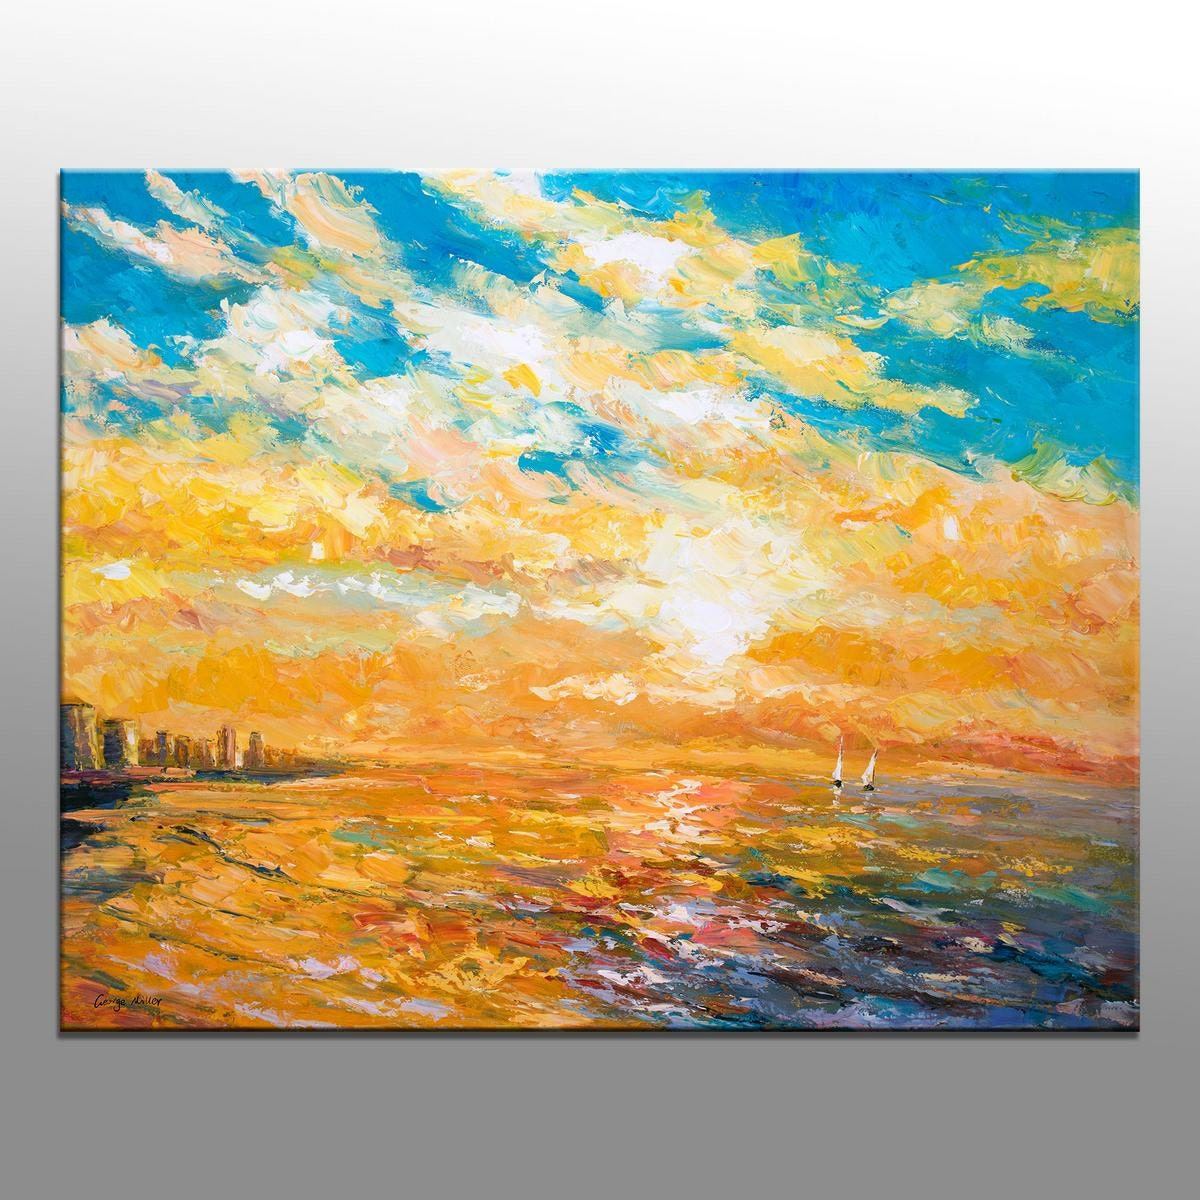 Large Oil Painting Canvas Wall Art Kitchen Art Abstract Oil